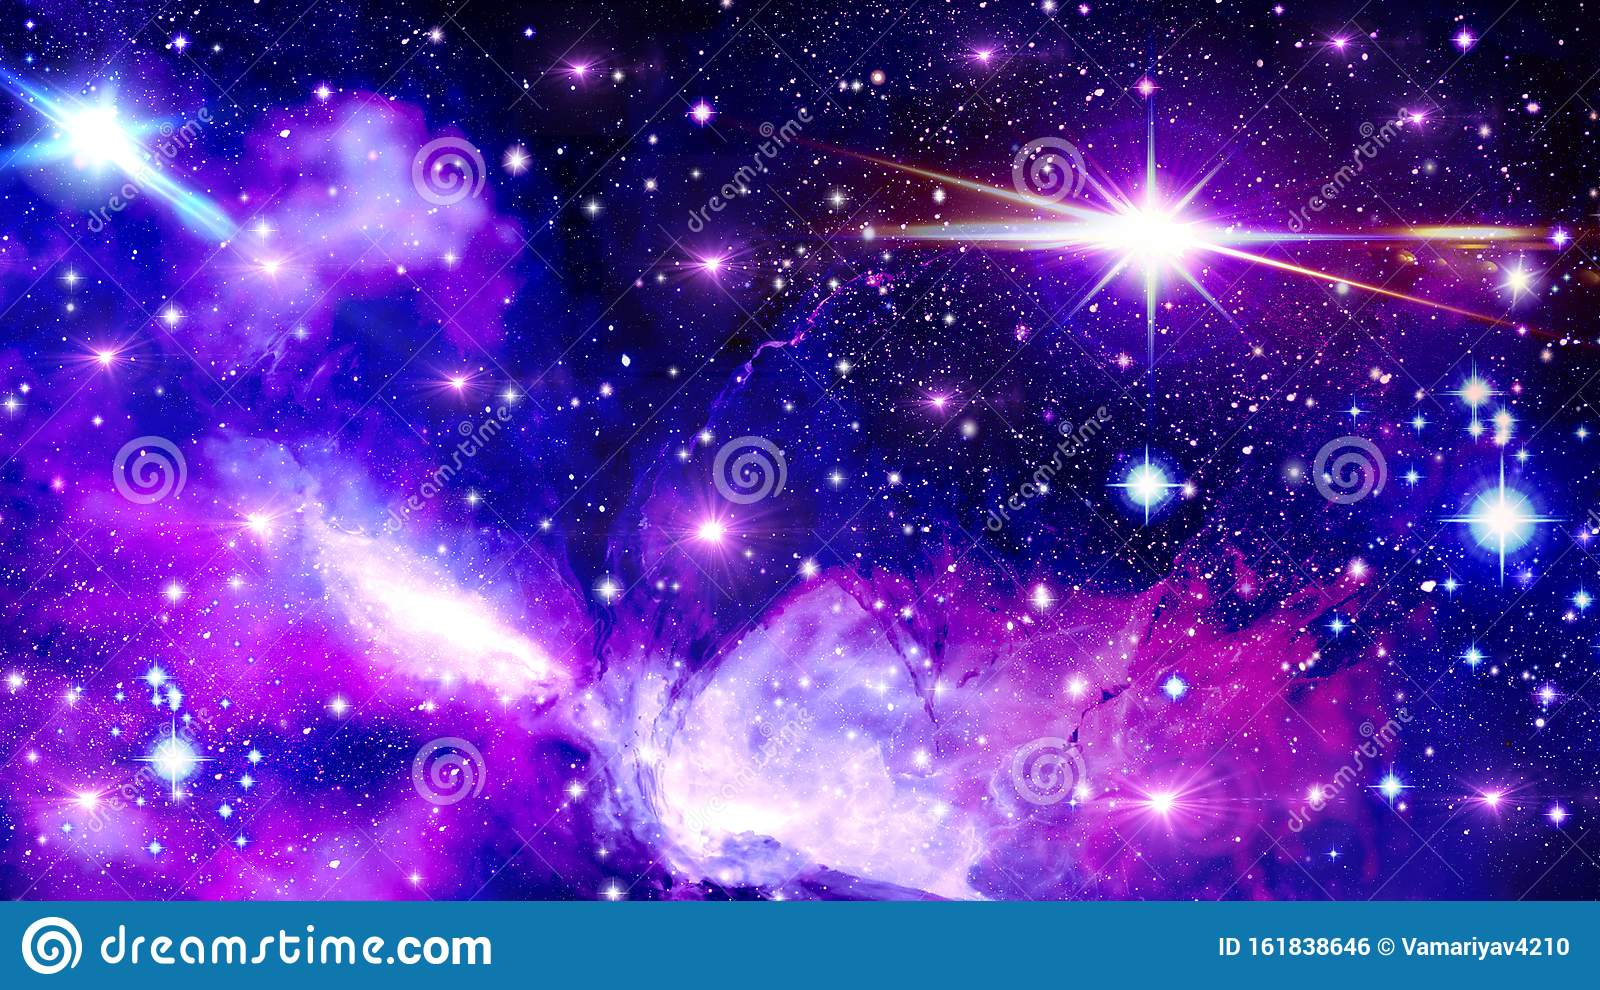 Space Universe Fantasy Scattering Of Stars Bright Blue Purple Pink Black Sky Bright Star Flash Many Stars Stock Illustration Illustration Of Stars Purple 161838646